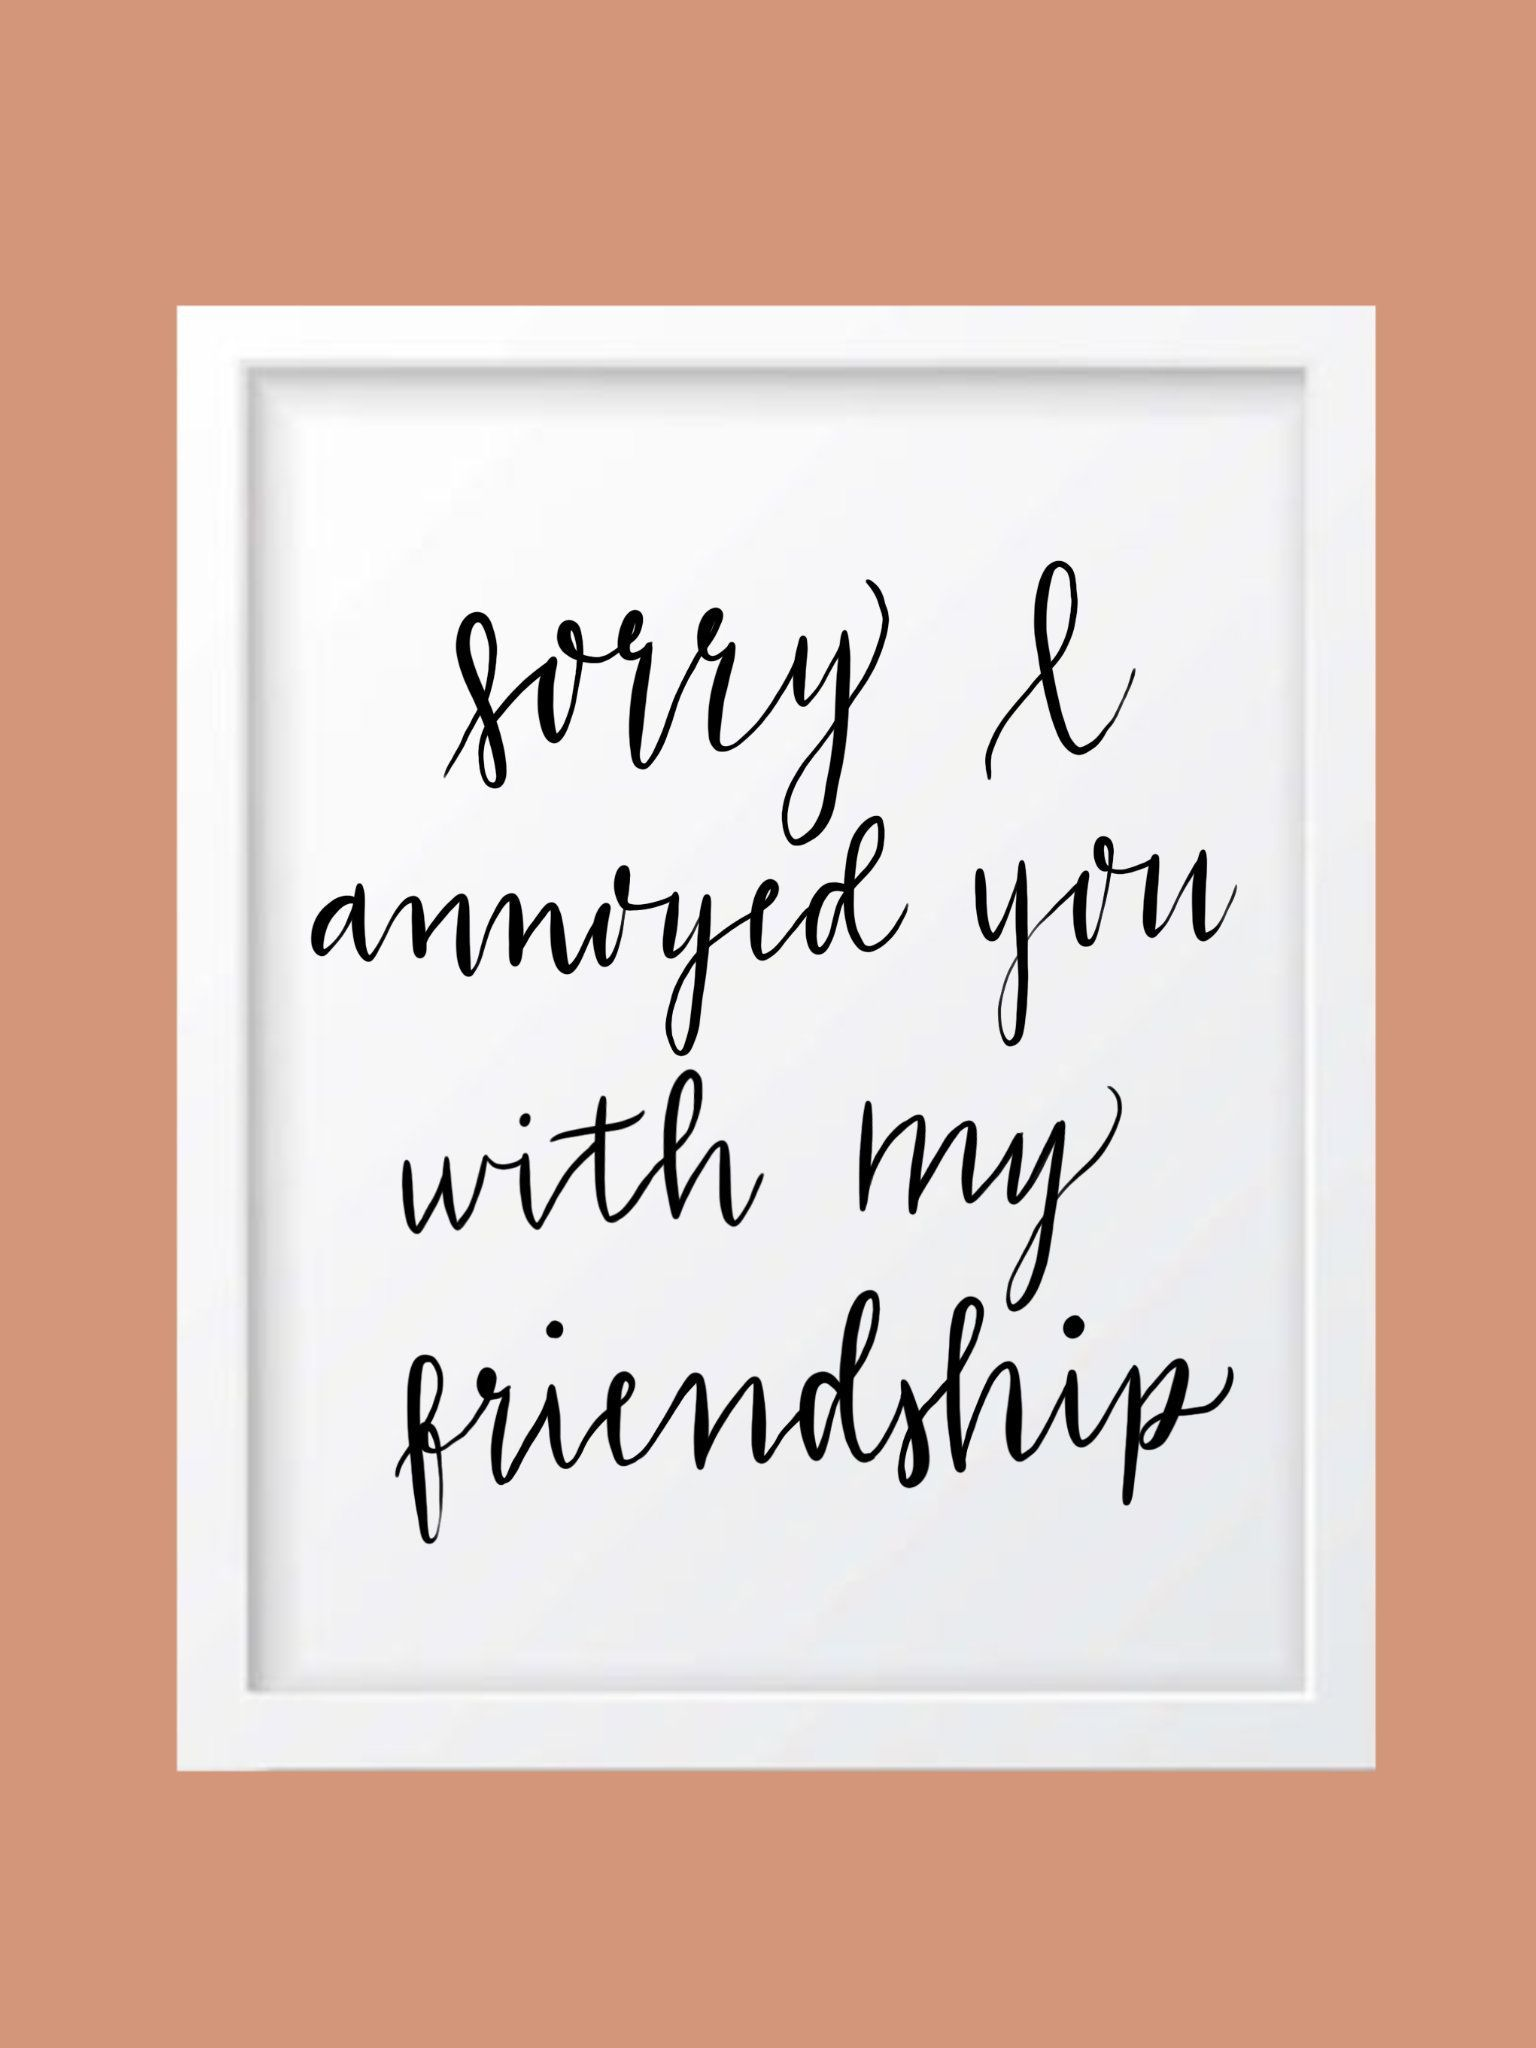 Sorry I Annoyed You With My Friendship - Andy Bernard The Office Quote - DOWNLOADABLE#andy #annoyed #bernard #downloadable #friendship #office #quote